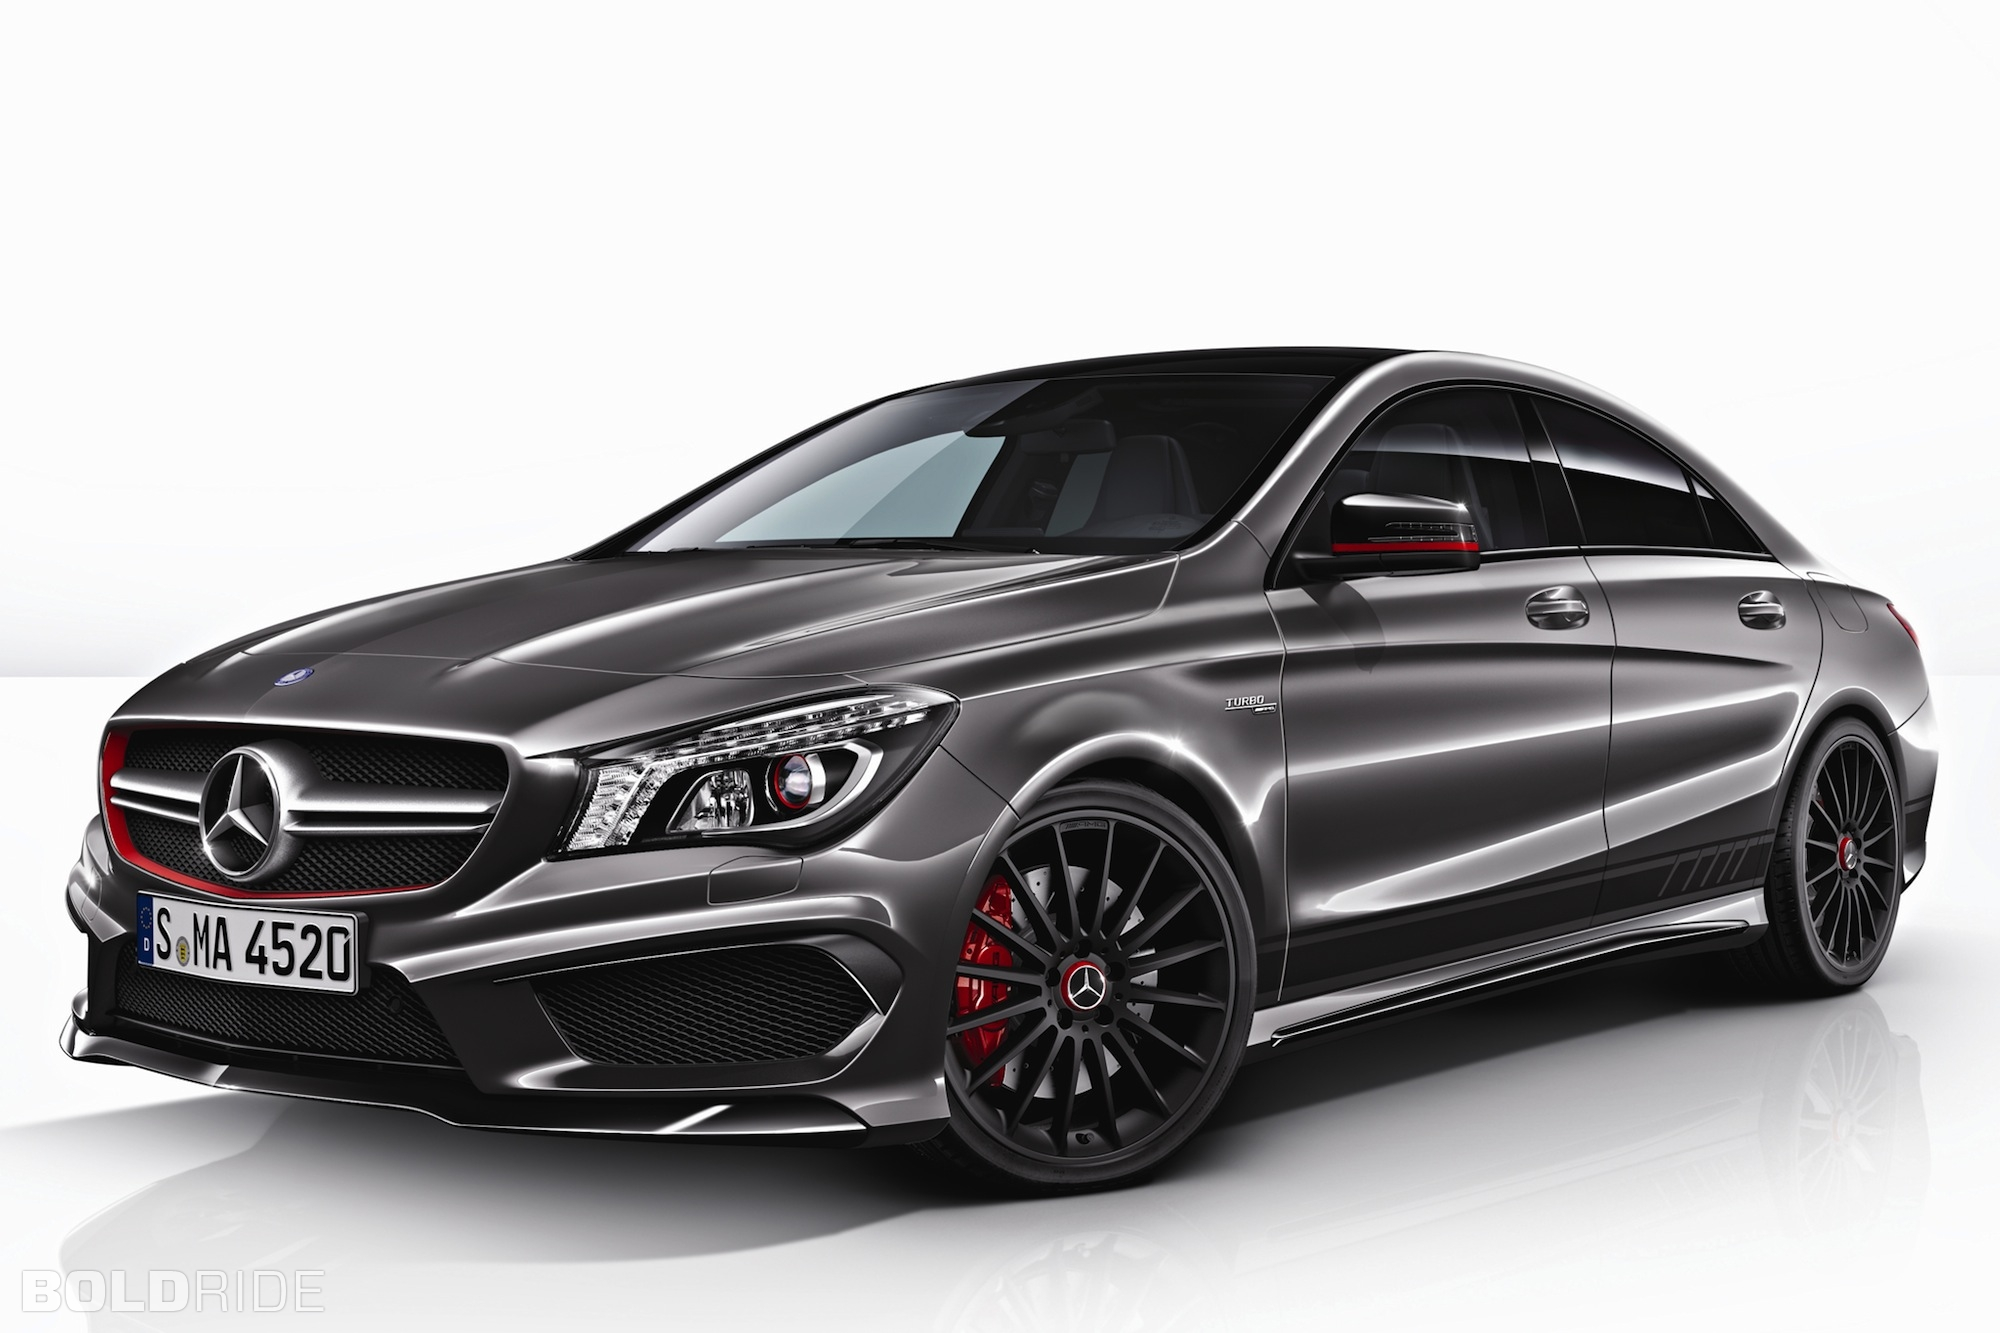 2014 Mercedes-Benz CLA45 AMG Edition 1 1024 x 770